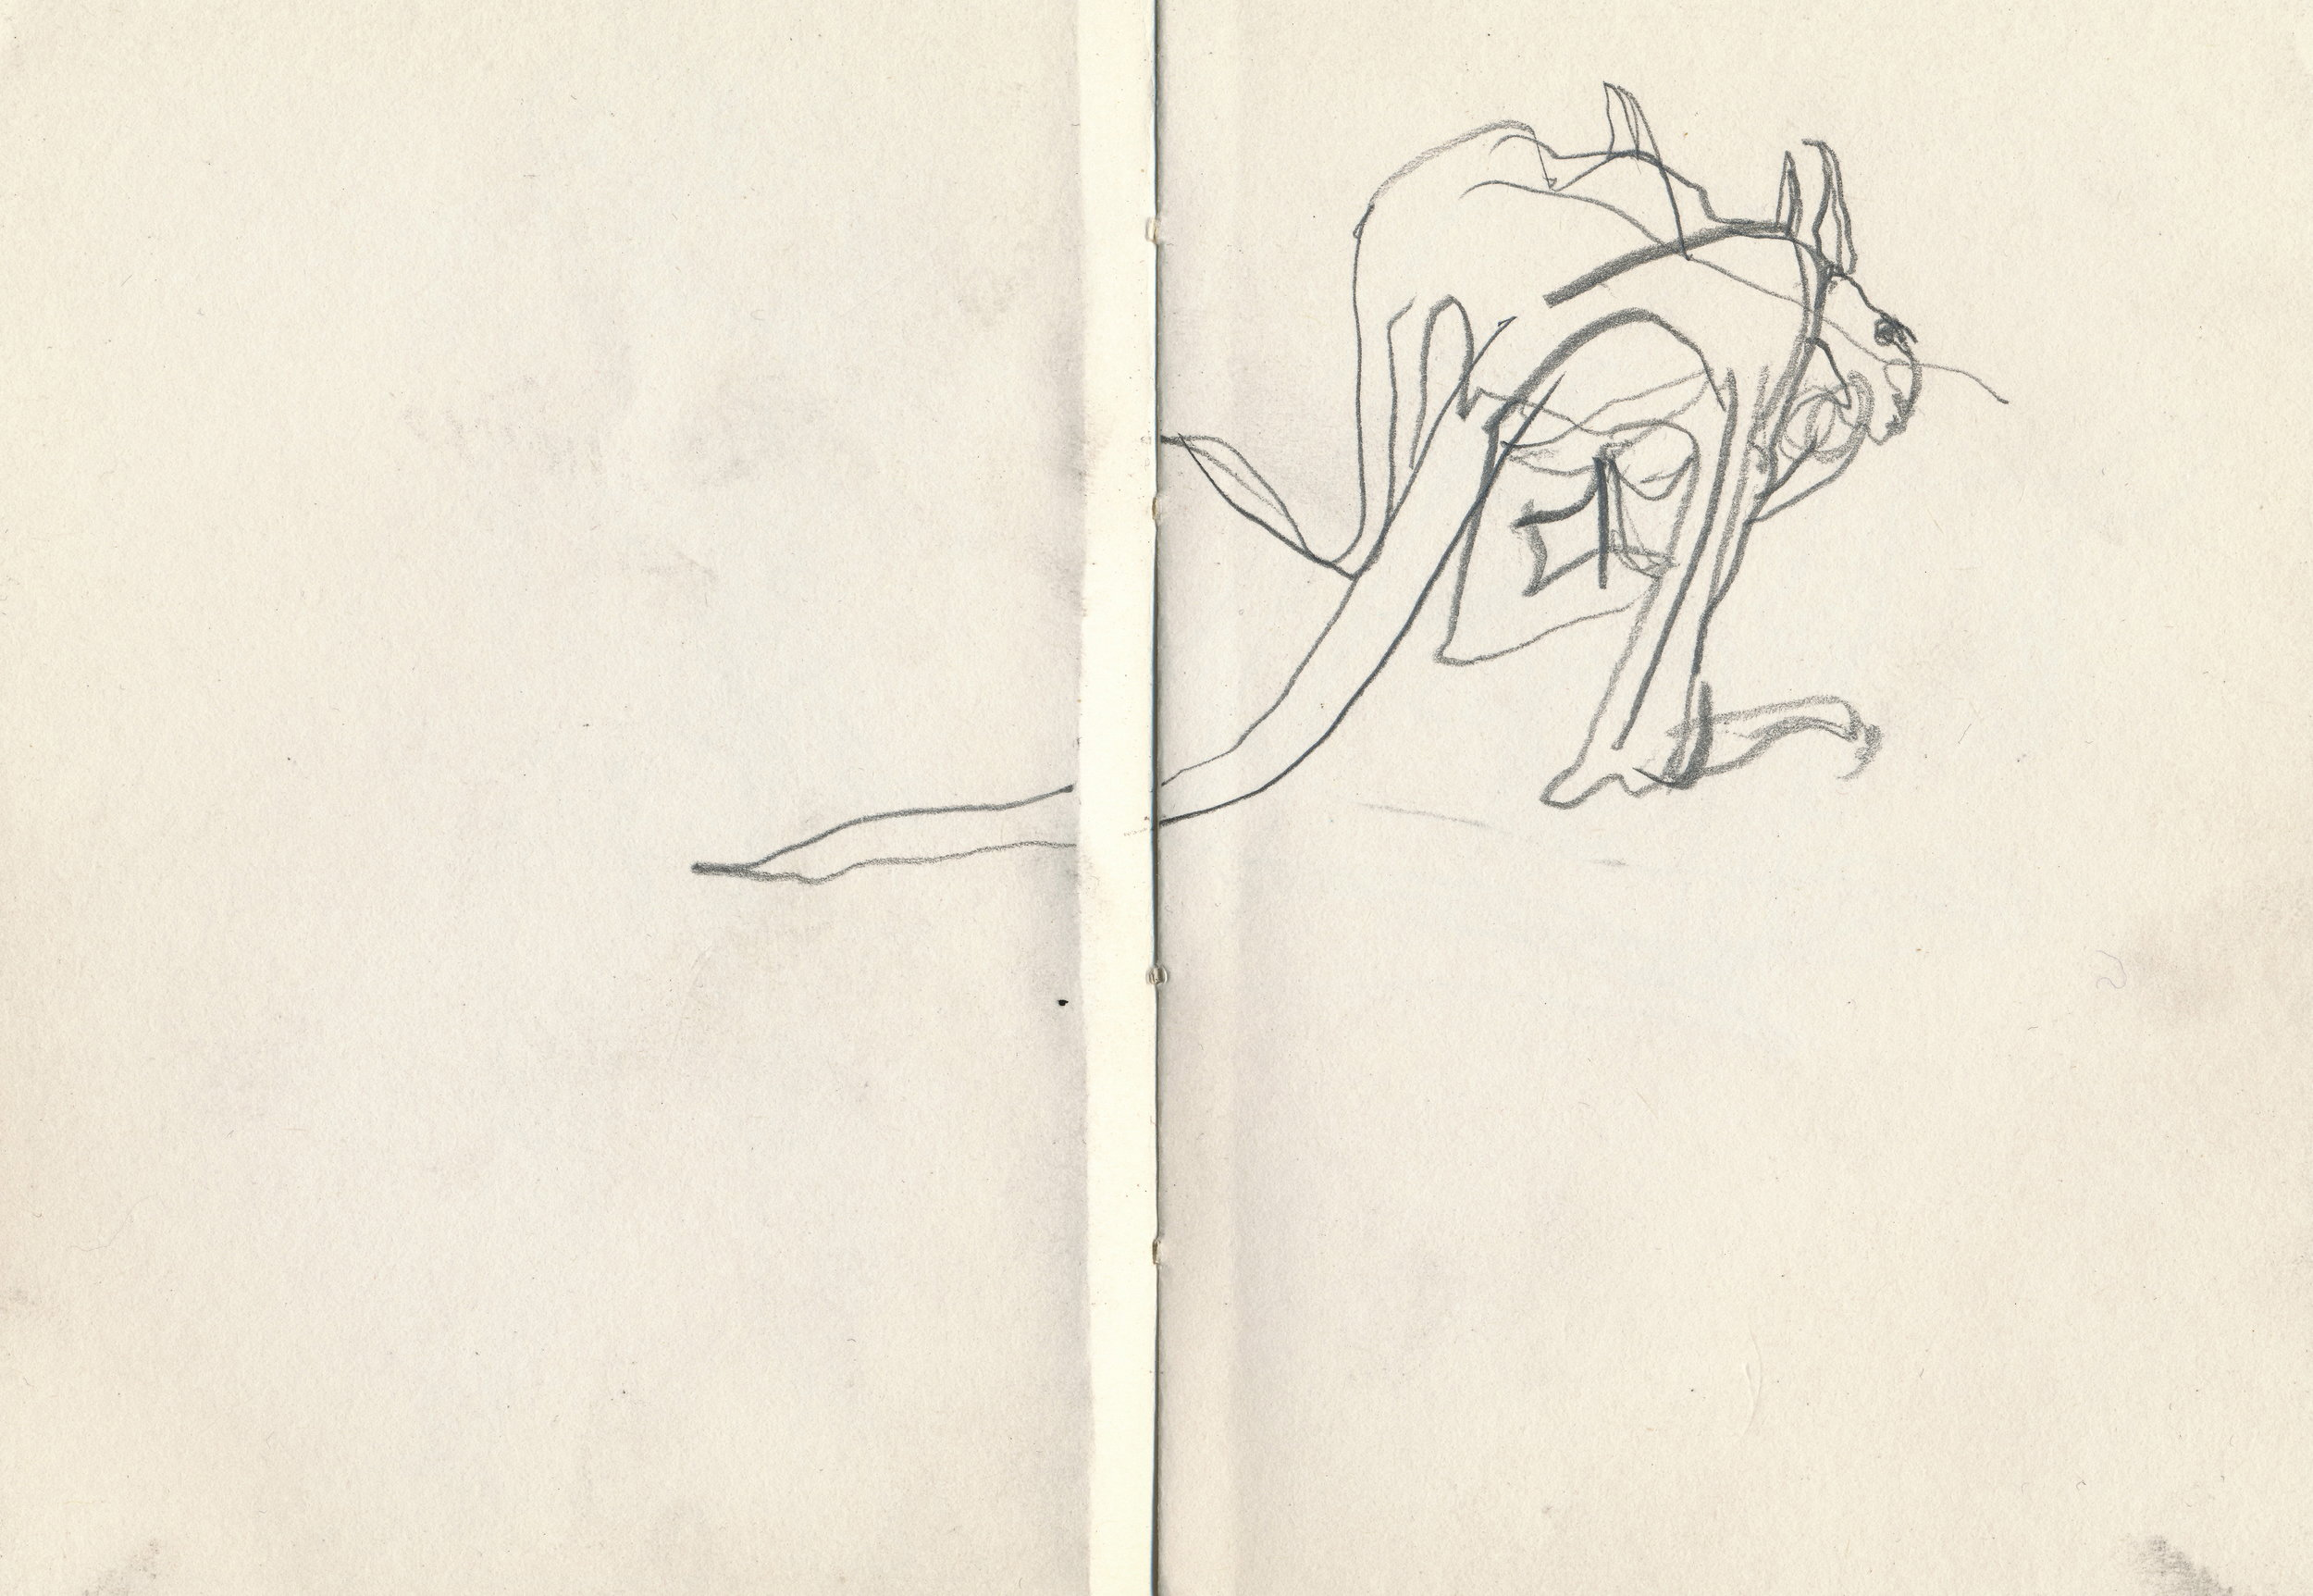 302) Kangaroo drawing 1993, pencil on paper 14x20.5cm.jpg